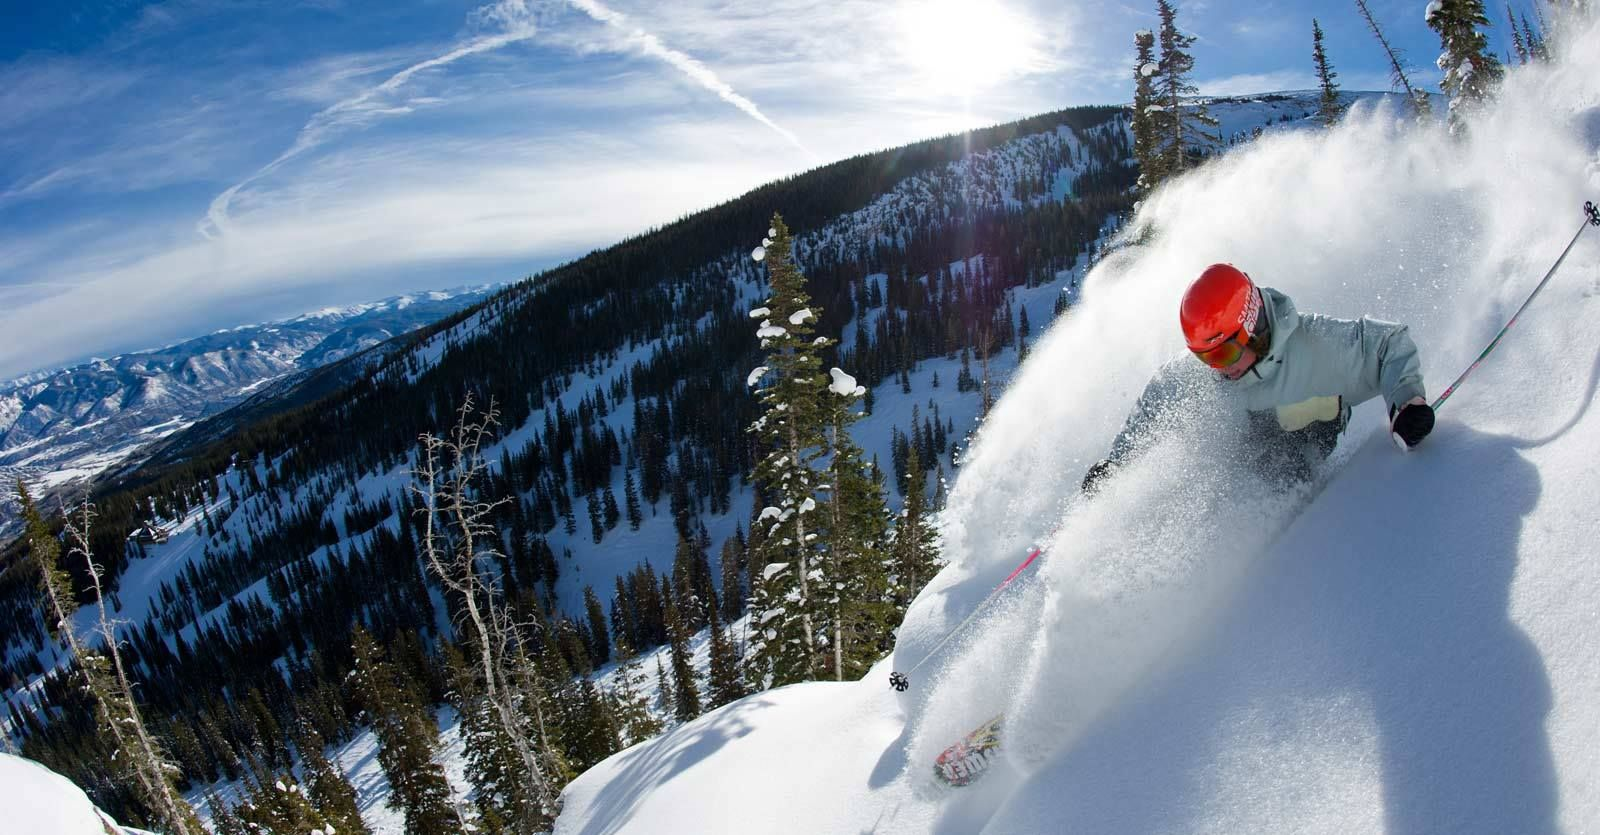 Annual rankings for the nation's ski resorts are coming in